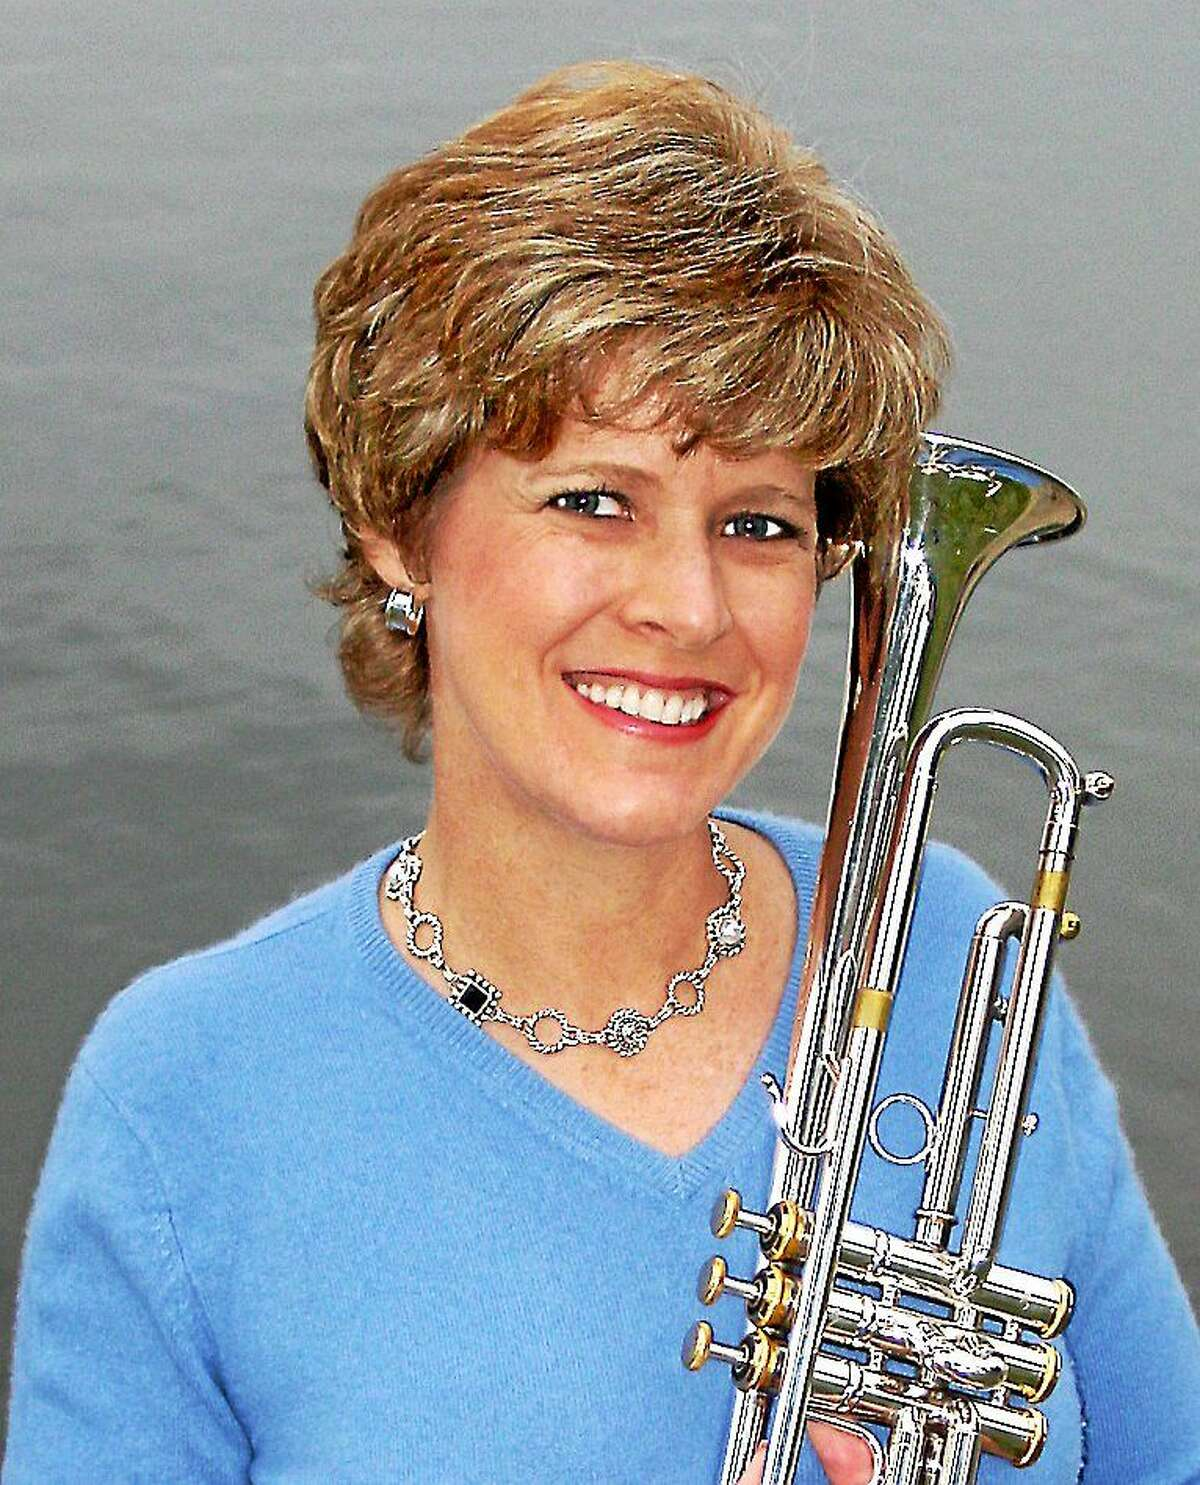 New England Arts & Entertainment presents The Louise Baranger Trio Oct. 17, part of the Fall Jazz Series at the Palace Theater Poli Club.